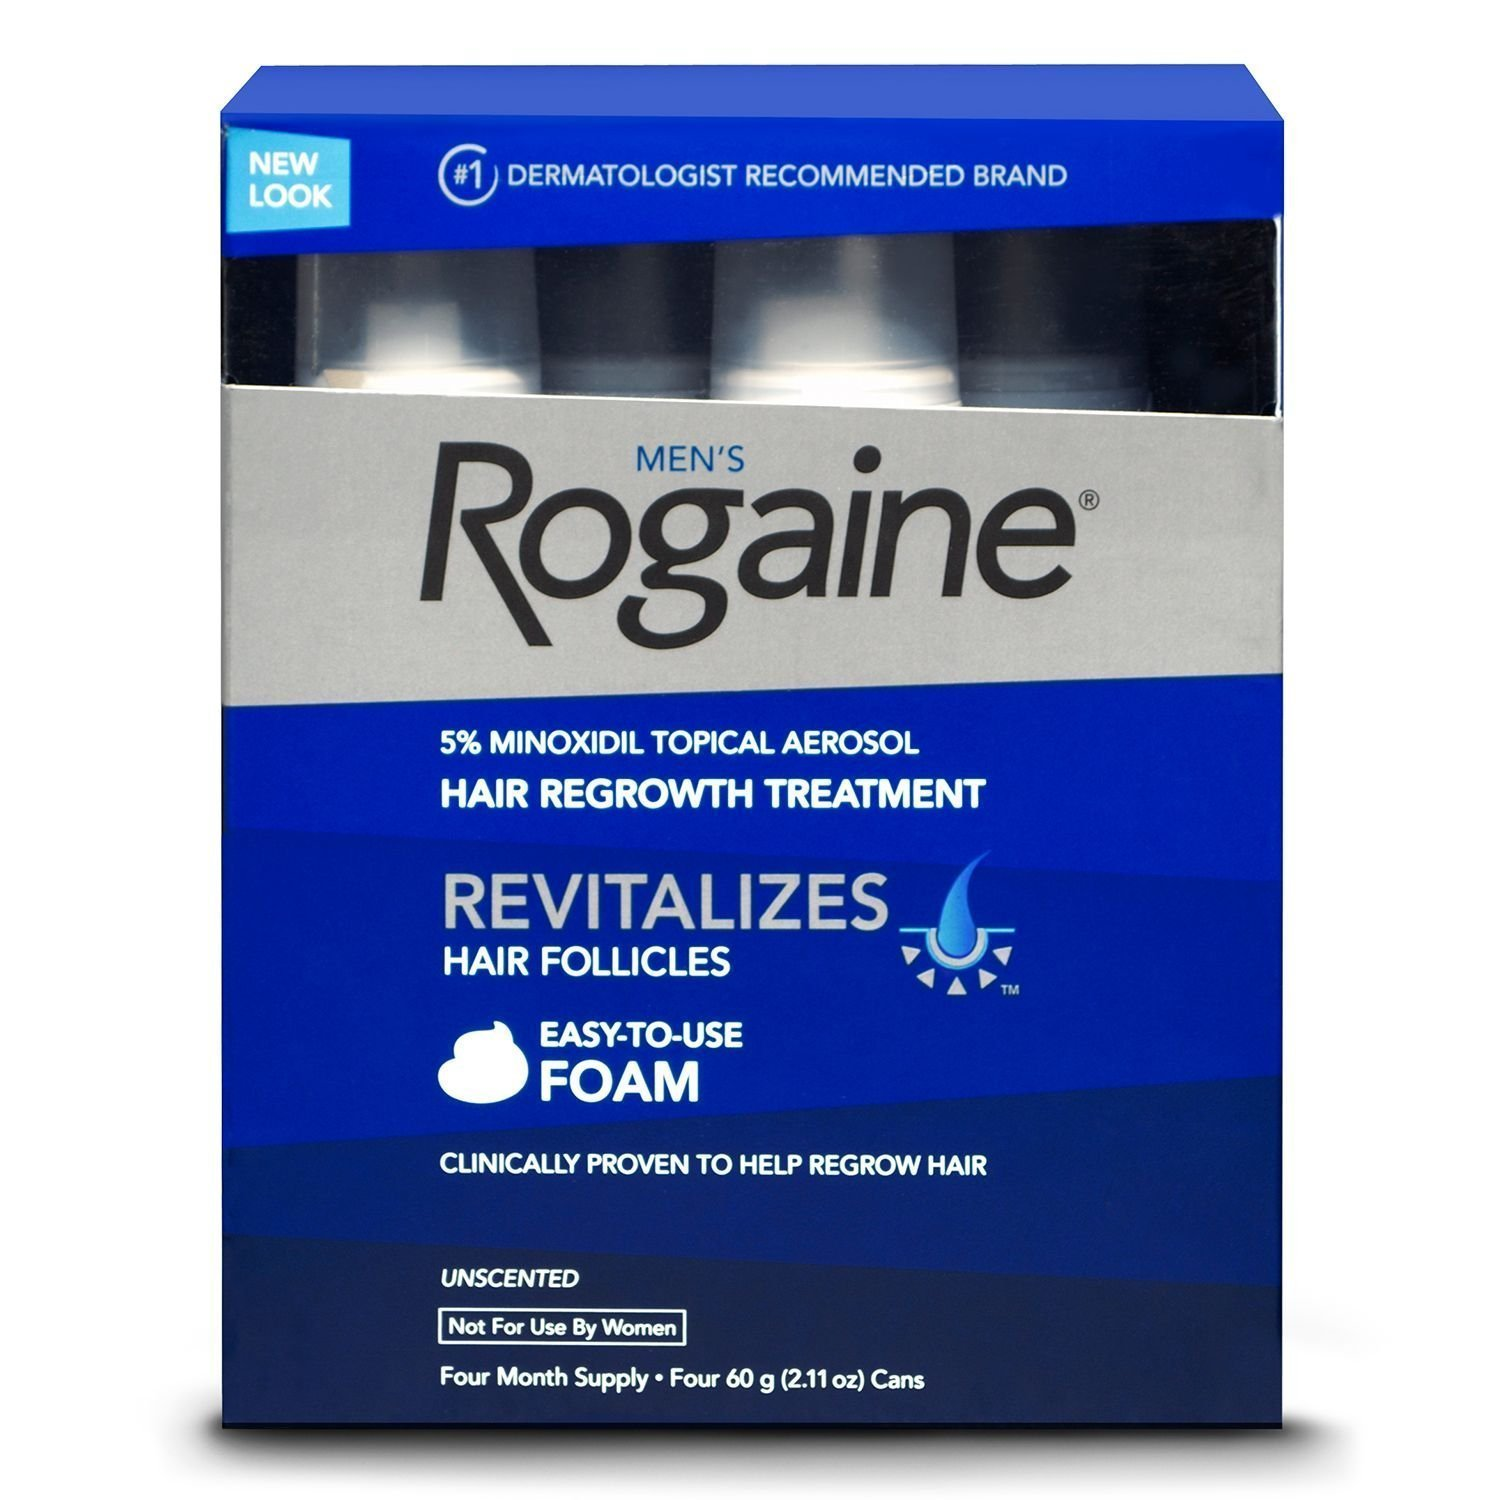 Rogaine Mens Regrowth Foam 5% Unscented 3 Month Supply McNeil-PPC Inc